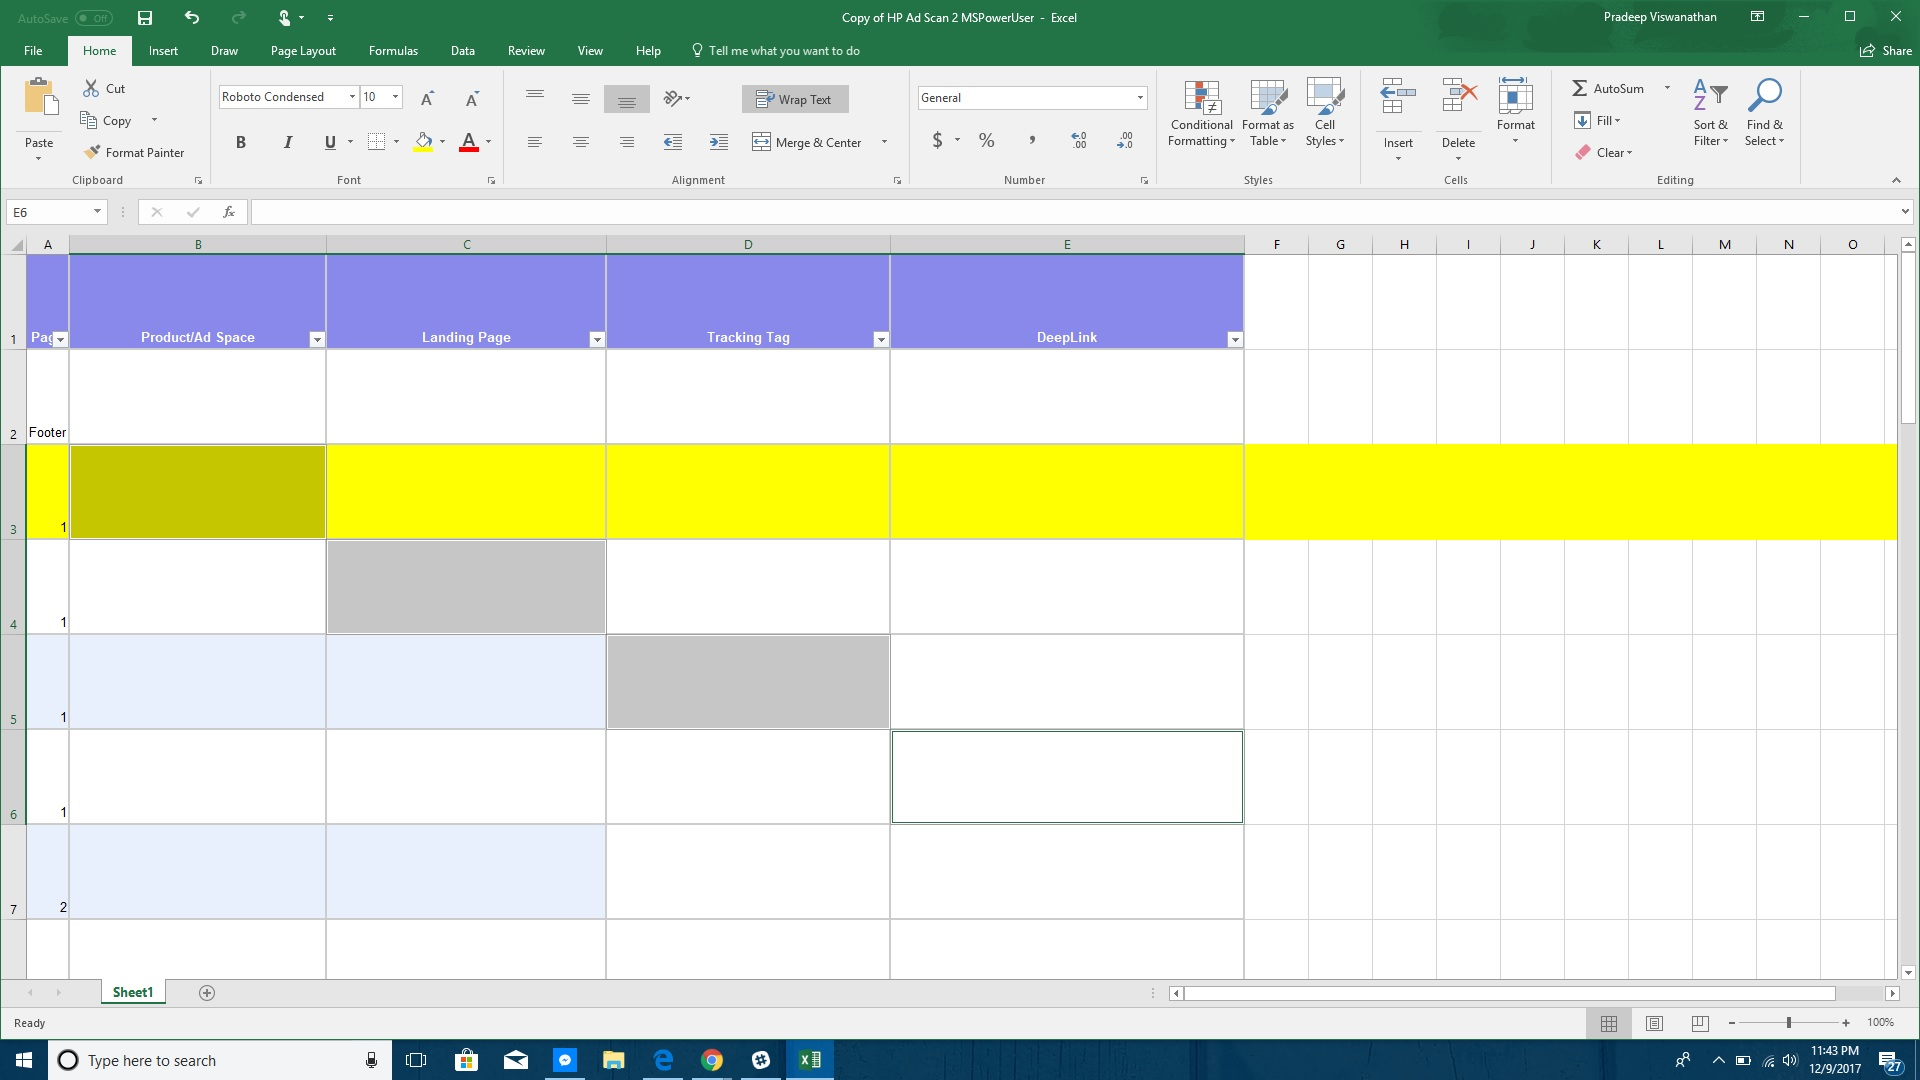 Microsoft Is Fixing One Of The Most Annoying Issues In Excel